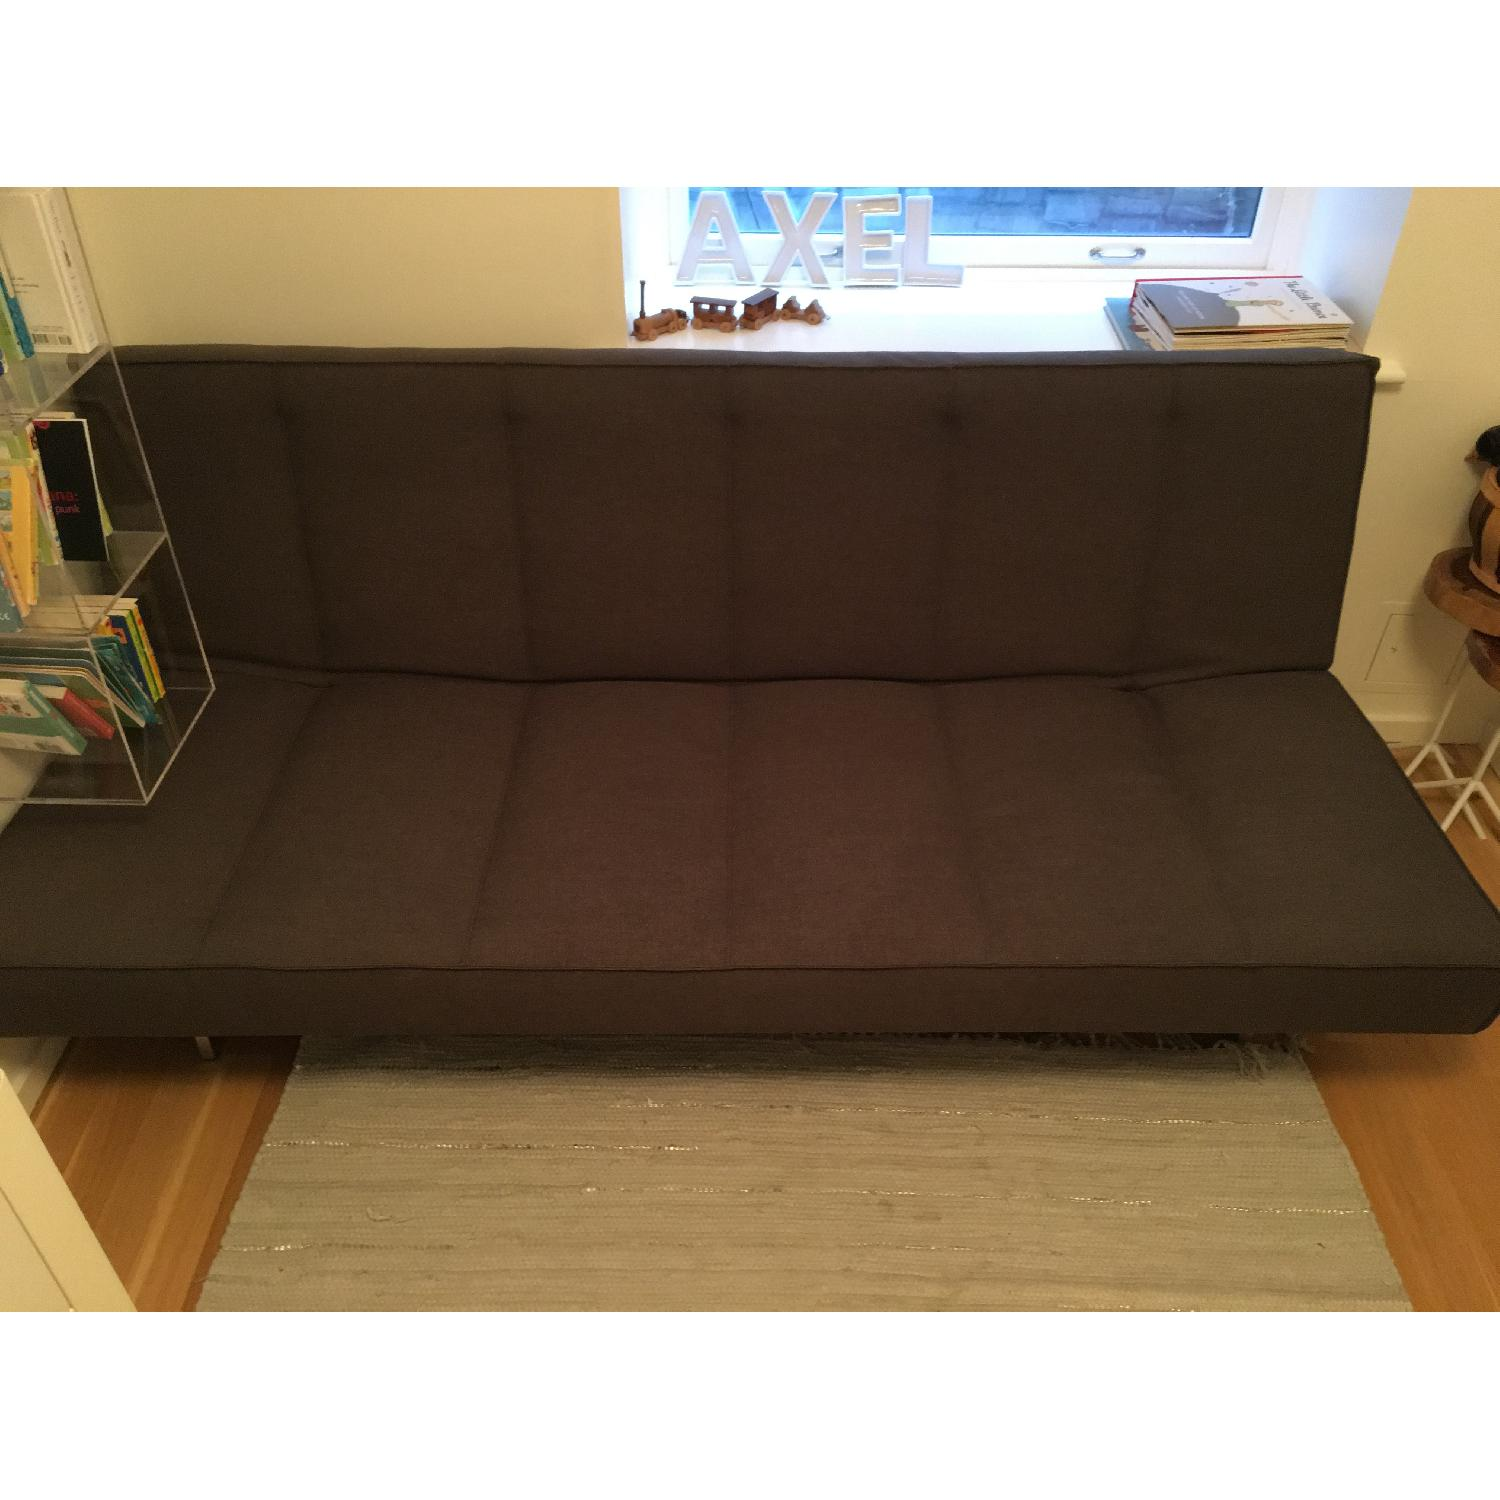 CB2 Flex Gravel Sleeper Sofa - image-16